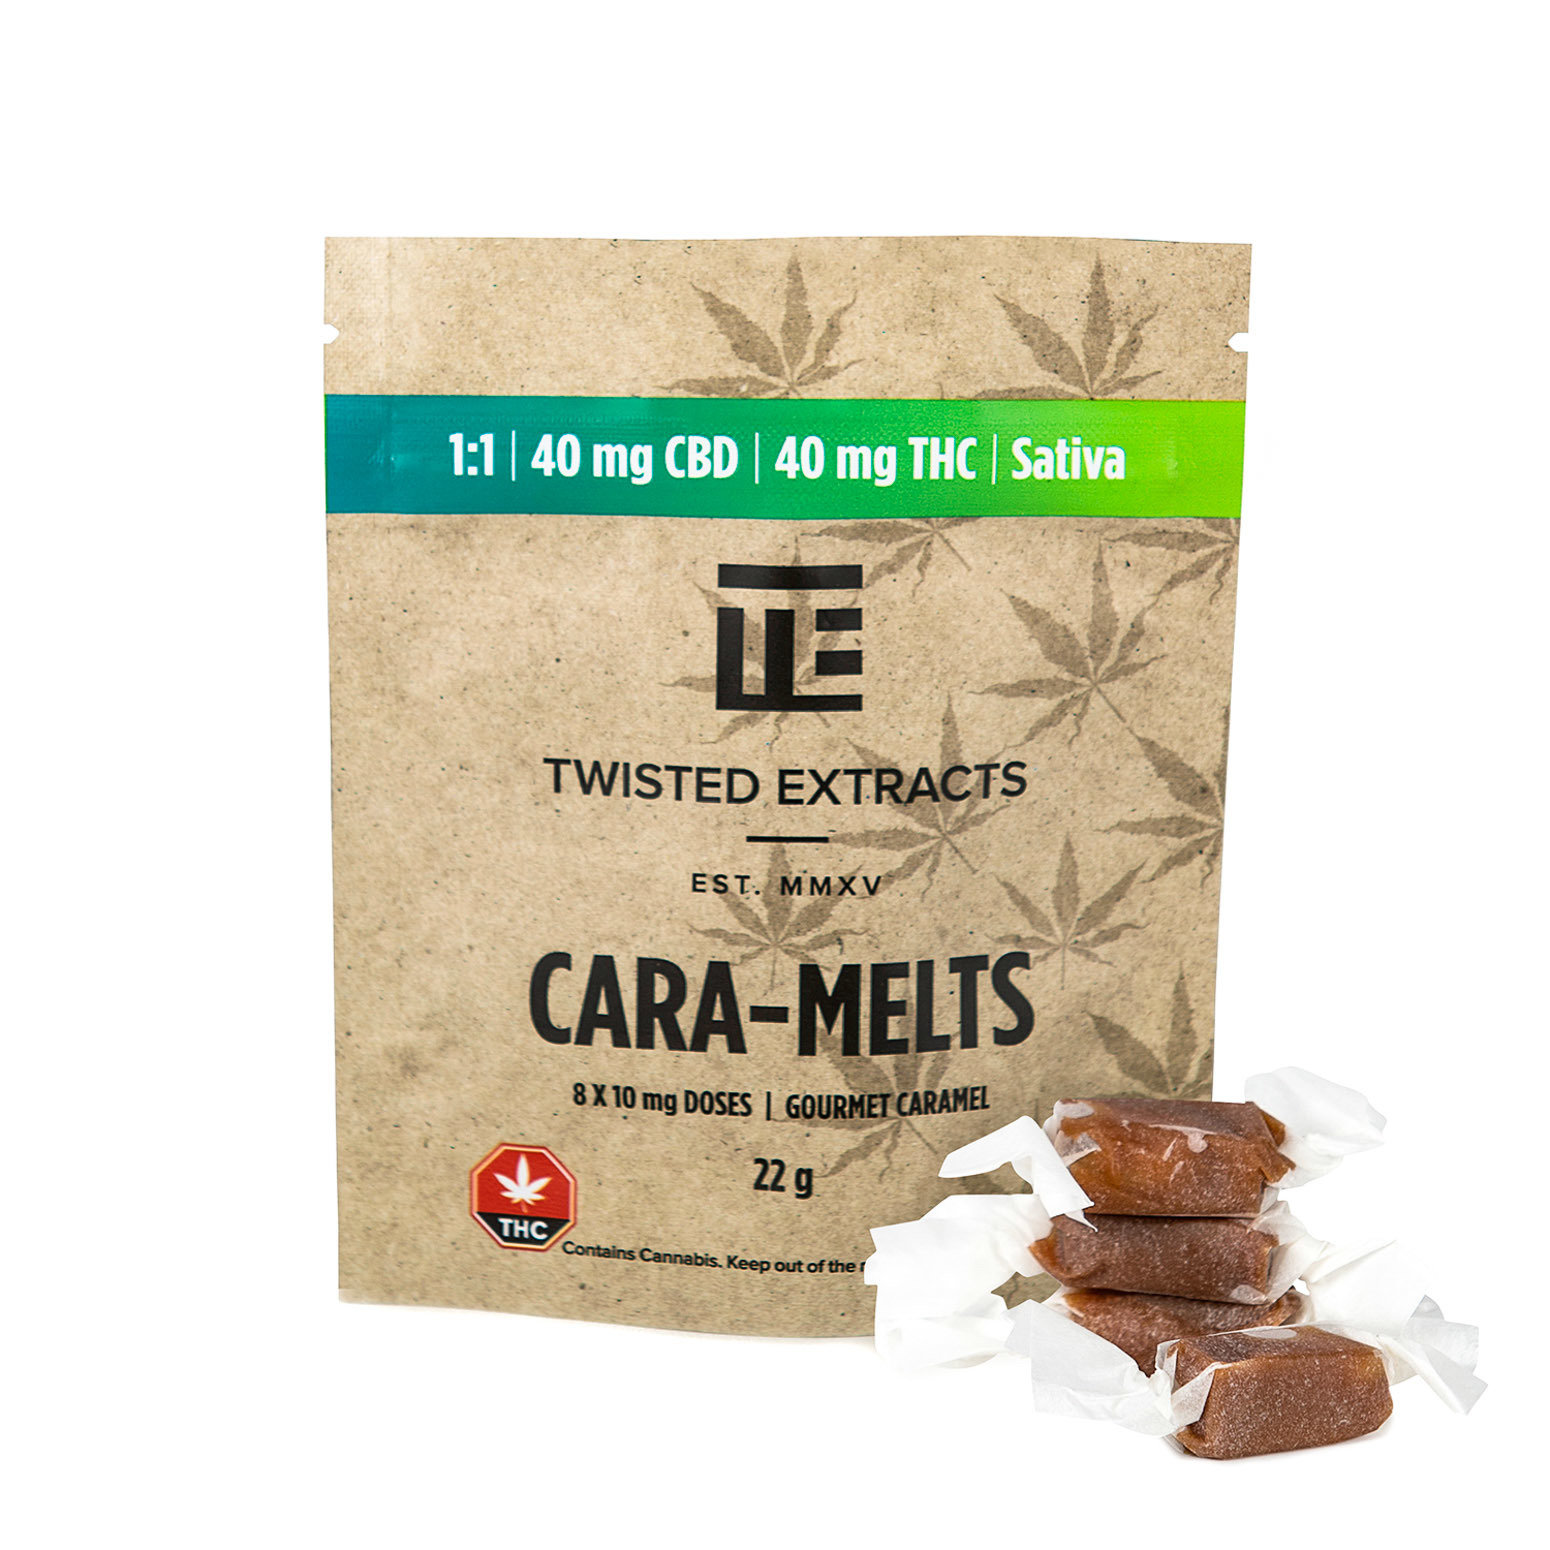 Cara-melts 1:1 (40mgTHC/40mg CBD) by Twisted Extracts 00038